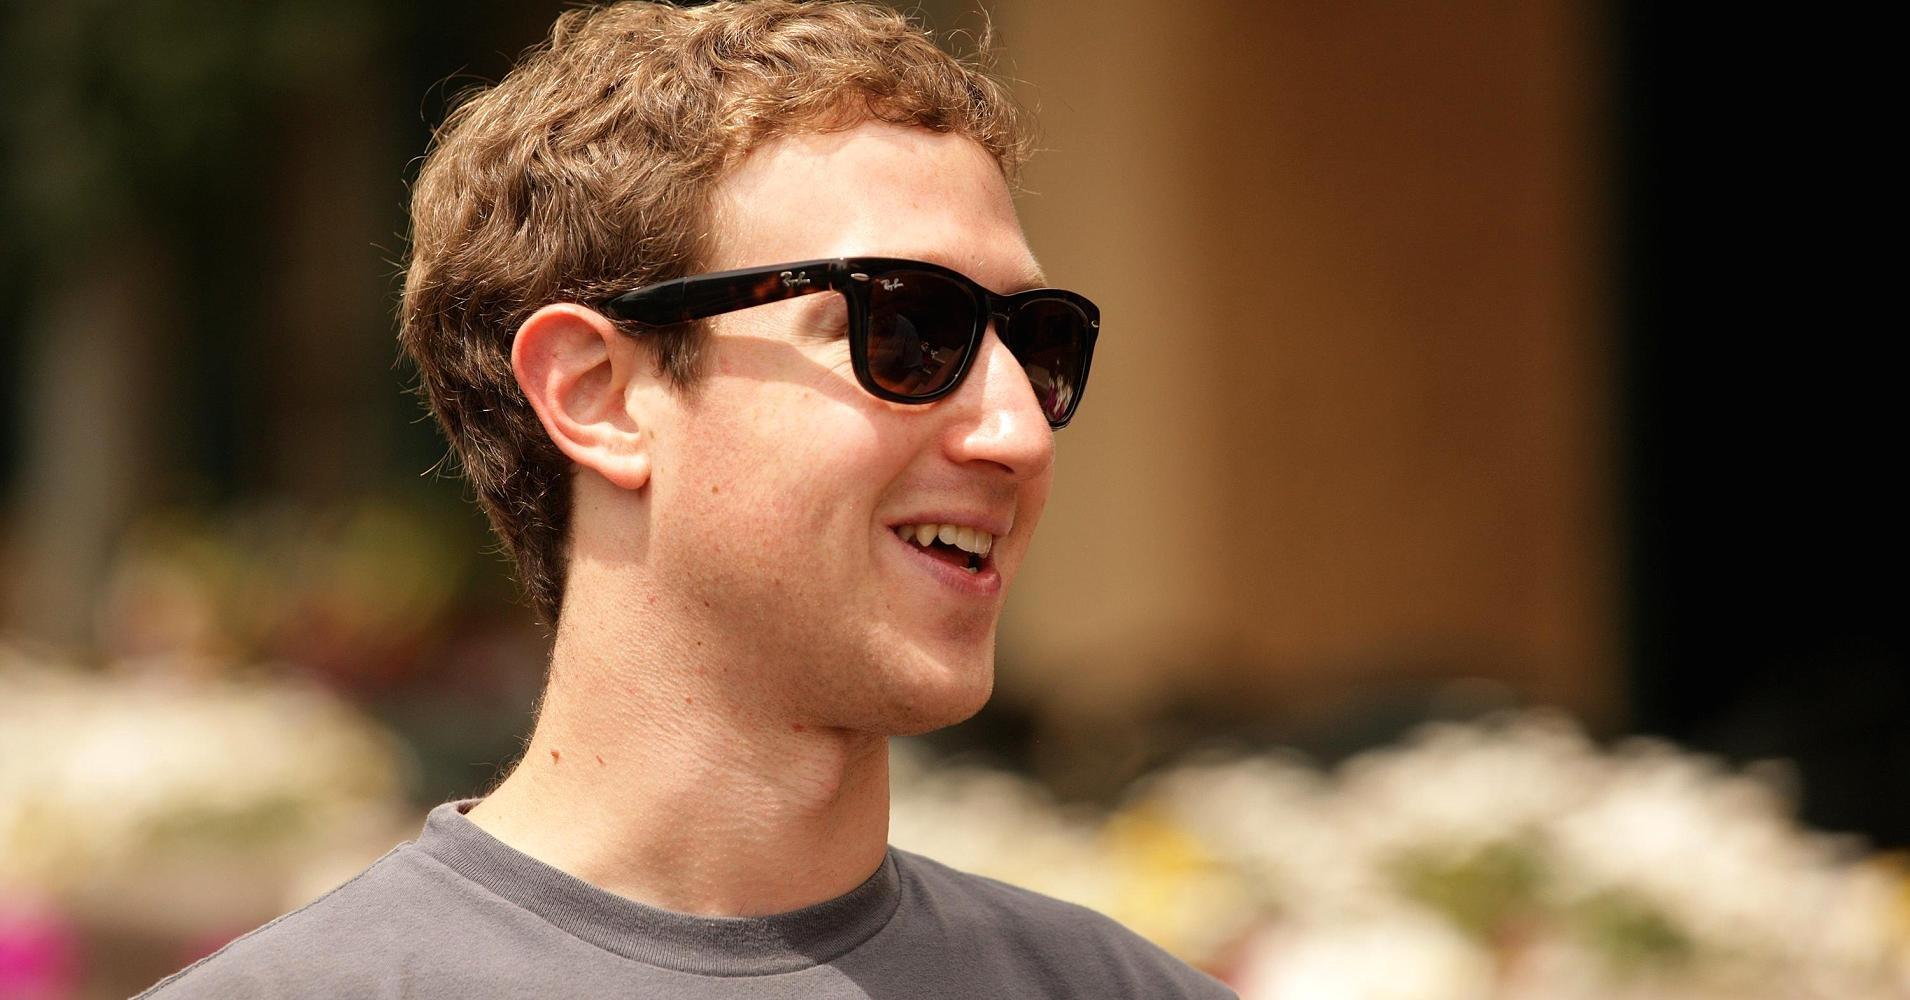 No lei! — Facebook's Zuckerberg sues hundreds of Hawaiians to force property sales to him